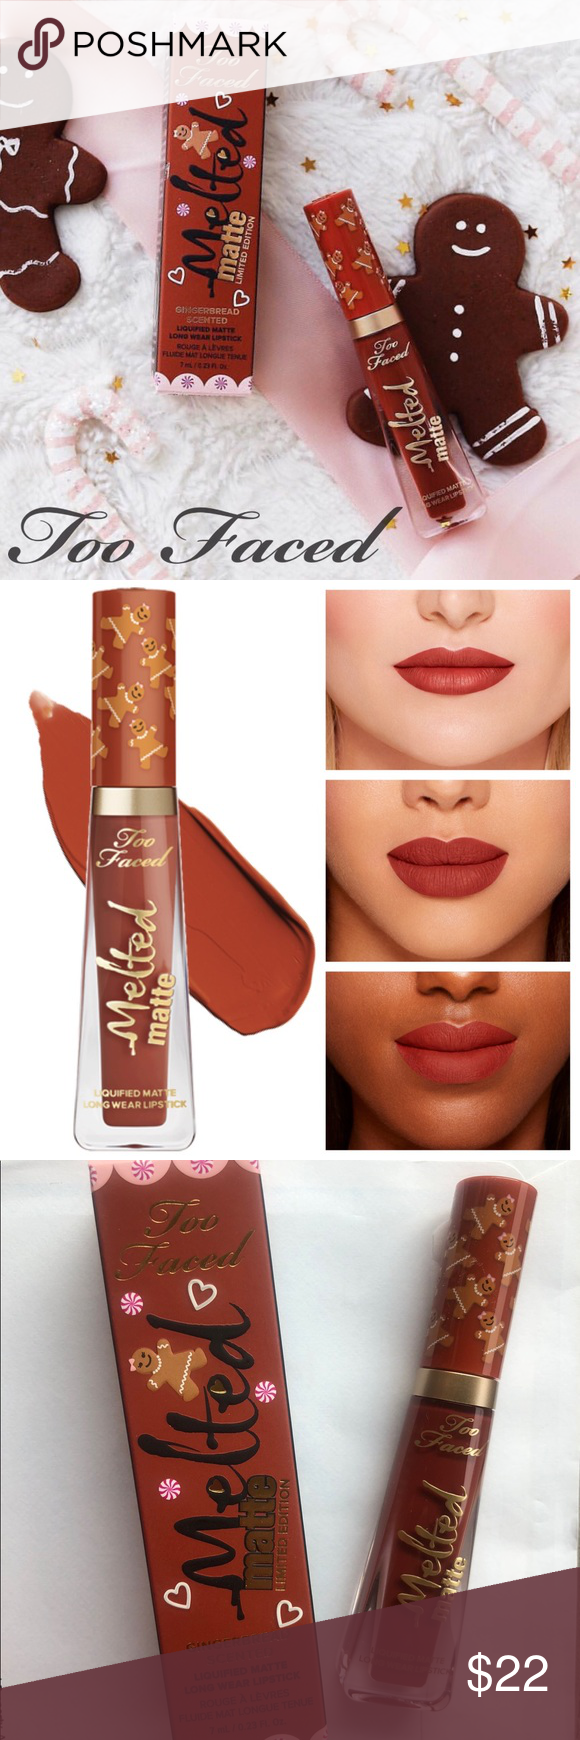 ????NEW Too Faced GINGERBREAD GIRL Melted Lipstick ????Brand new